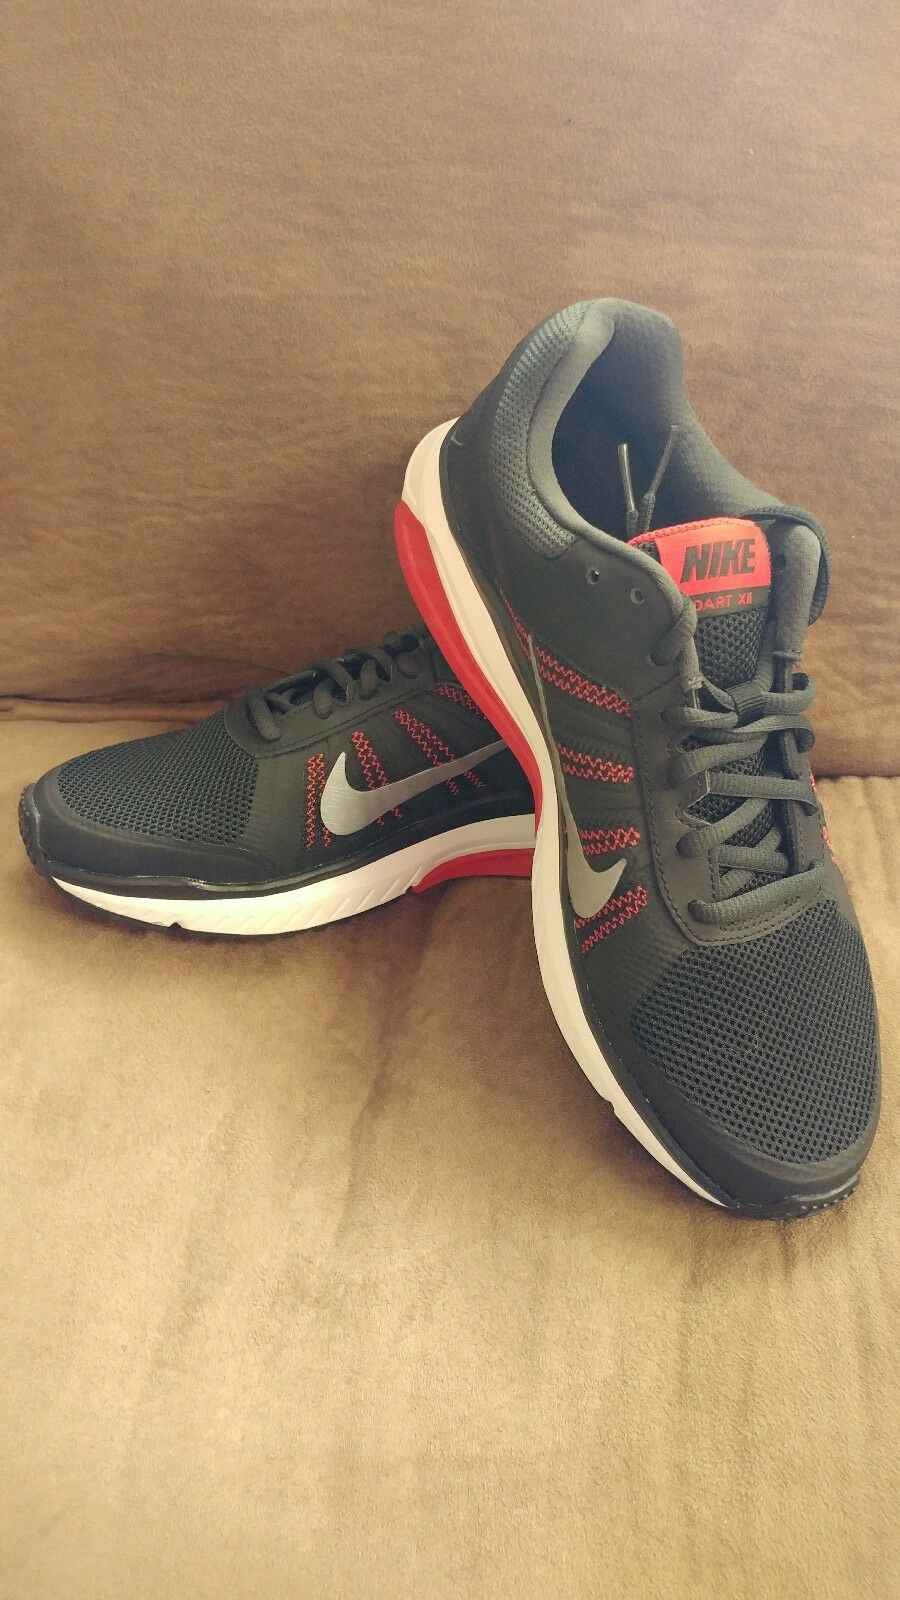 Men's Nike DART XII Experience Run Downshifter Comfortable New shoes for men and women, limited time discount